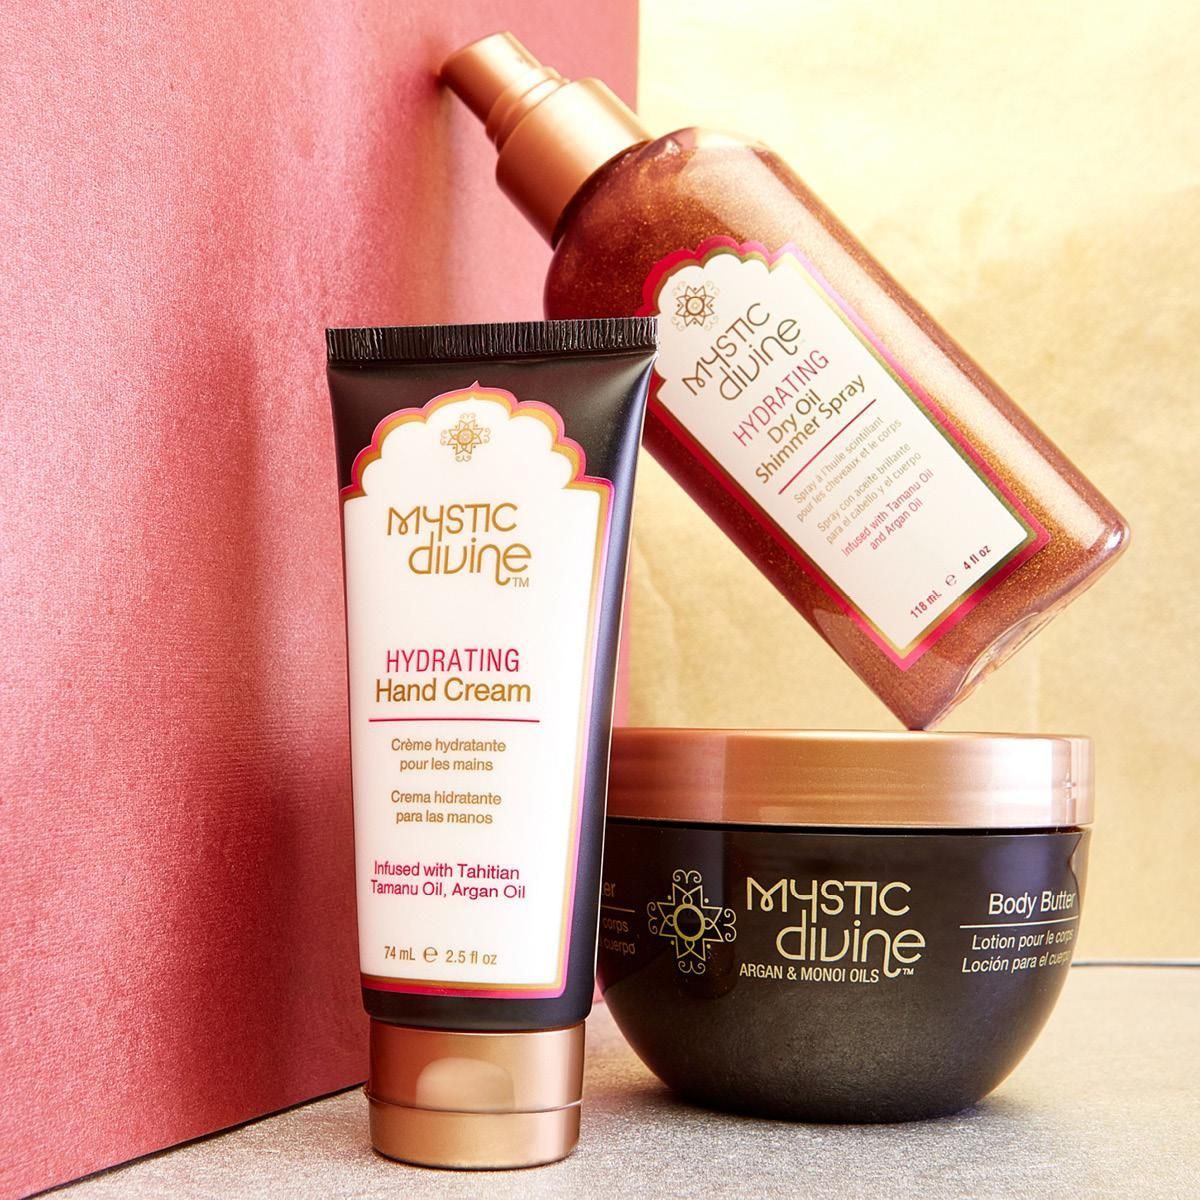 Mystic Divine Body collection is the perfect trio for